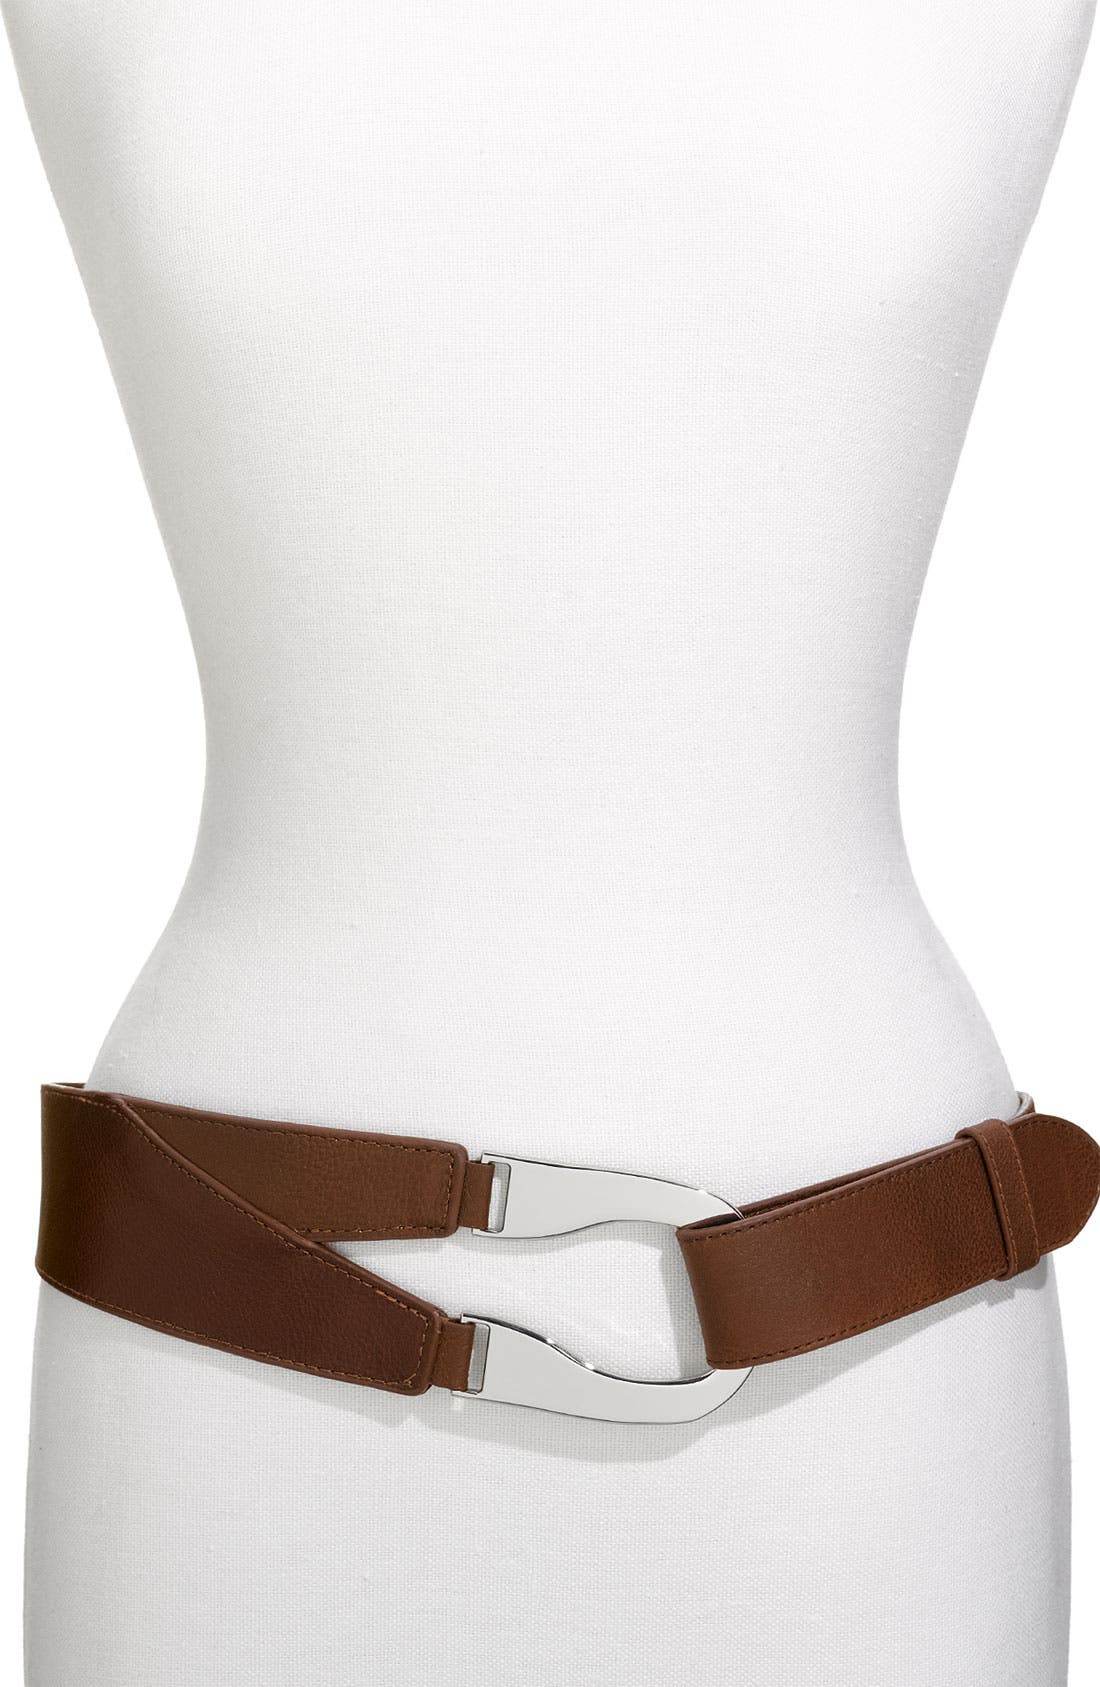 Alternate Image 1 Selected - Lafayette 148 New York Leather Belt